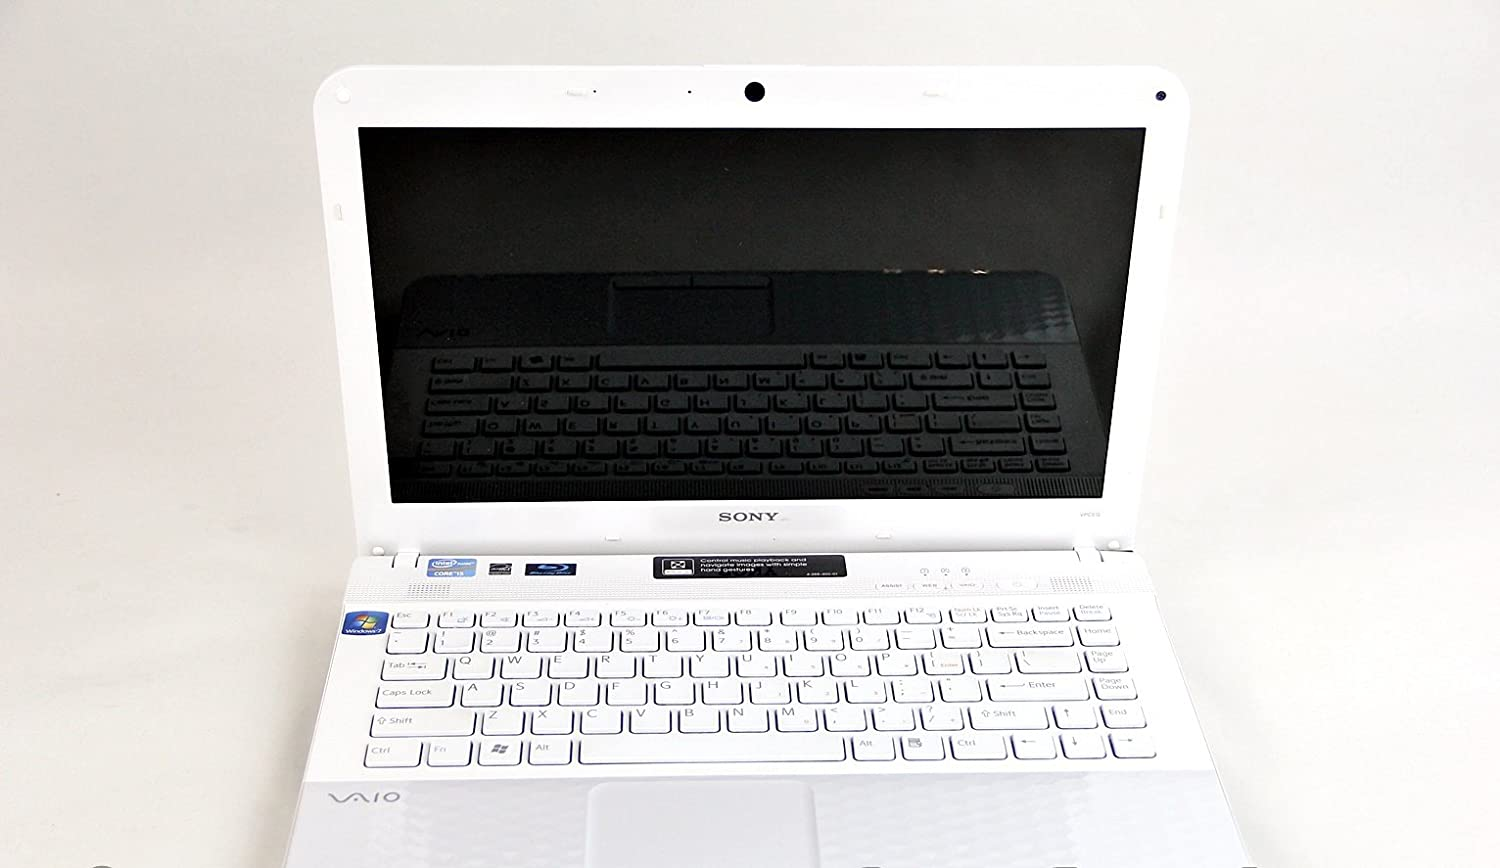 Sony Vaio VPCEG27FM Shared Library Windows